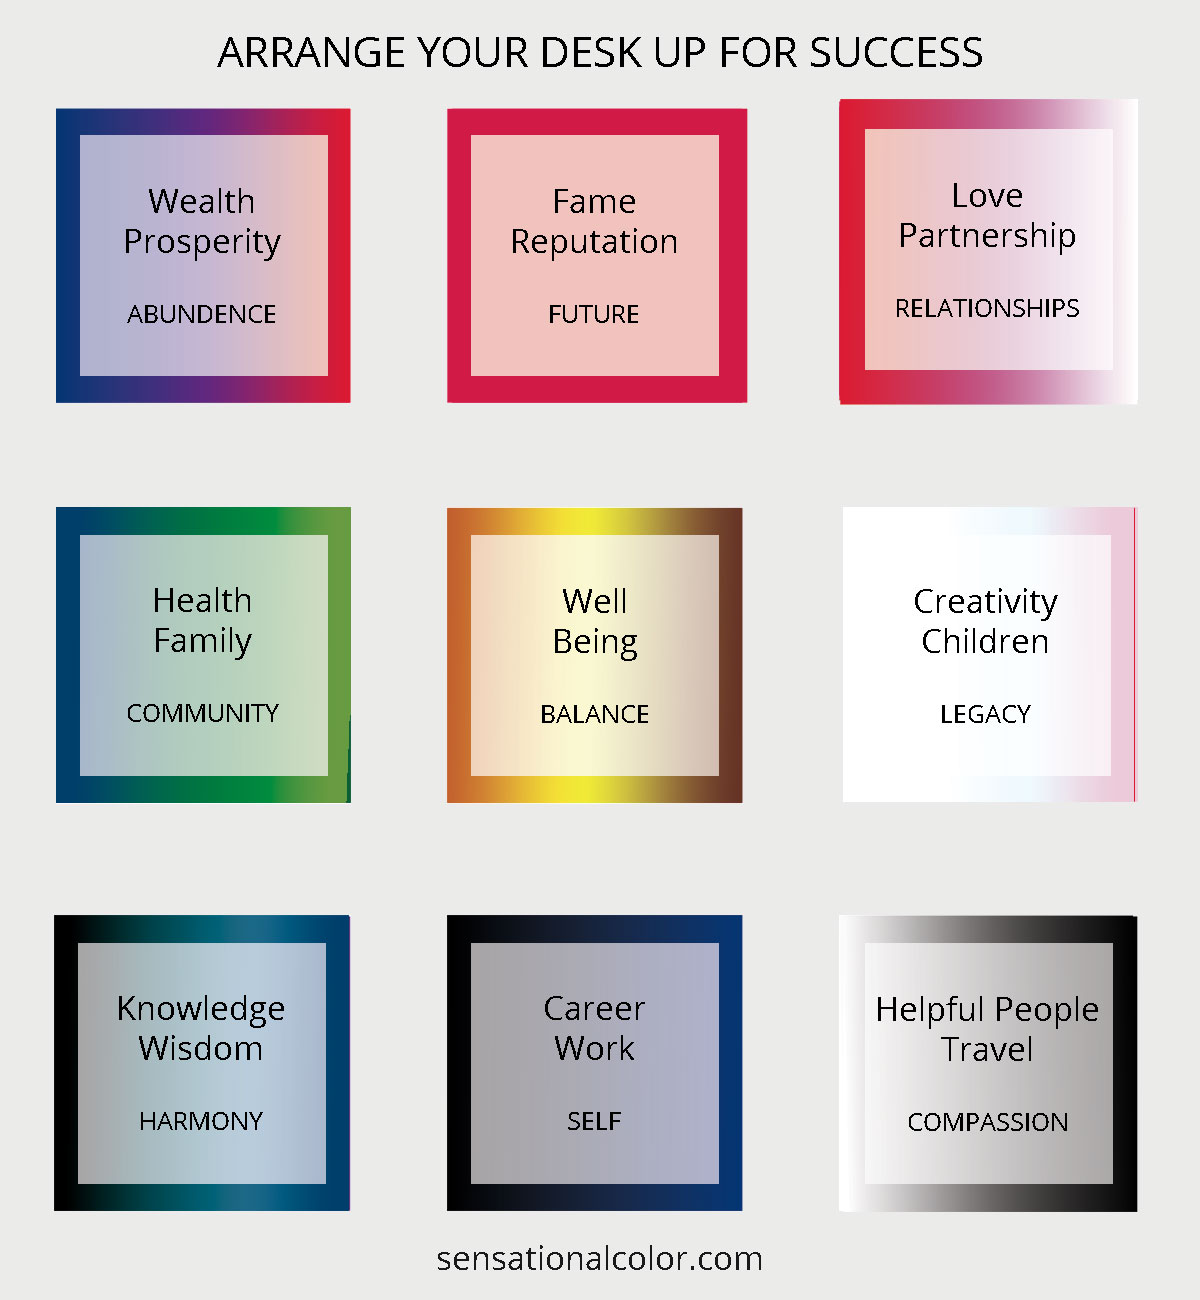 Feng shui your desk for success sensational color using a special blueprint called a bagua map you can follow some basic rules for adding feng shui to your desktop and attain the goals you seek malvernweather